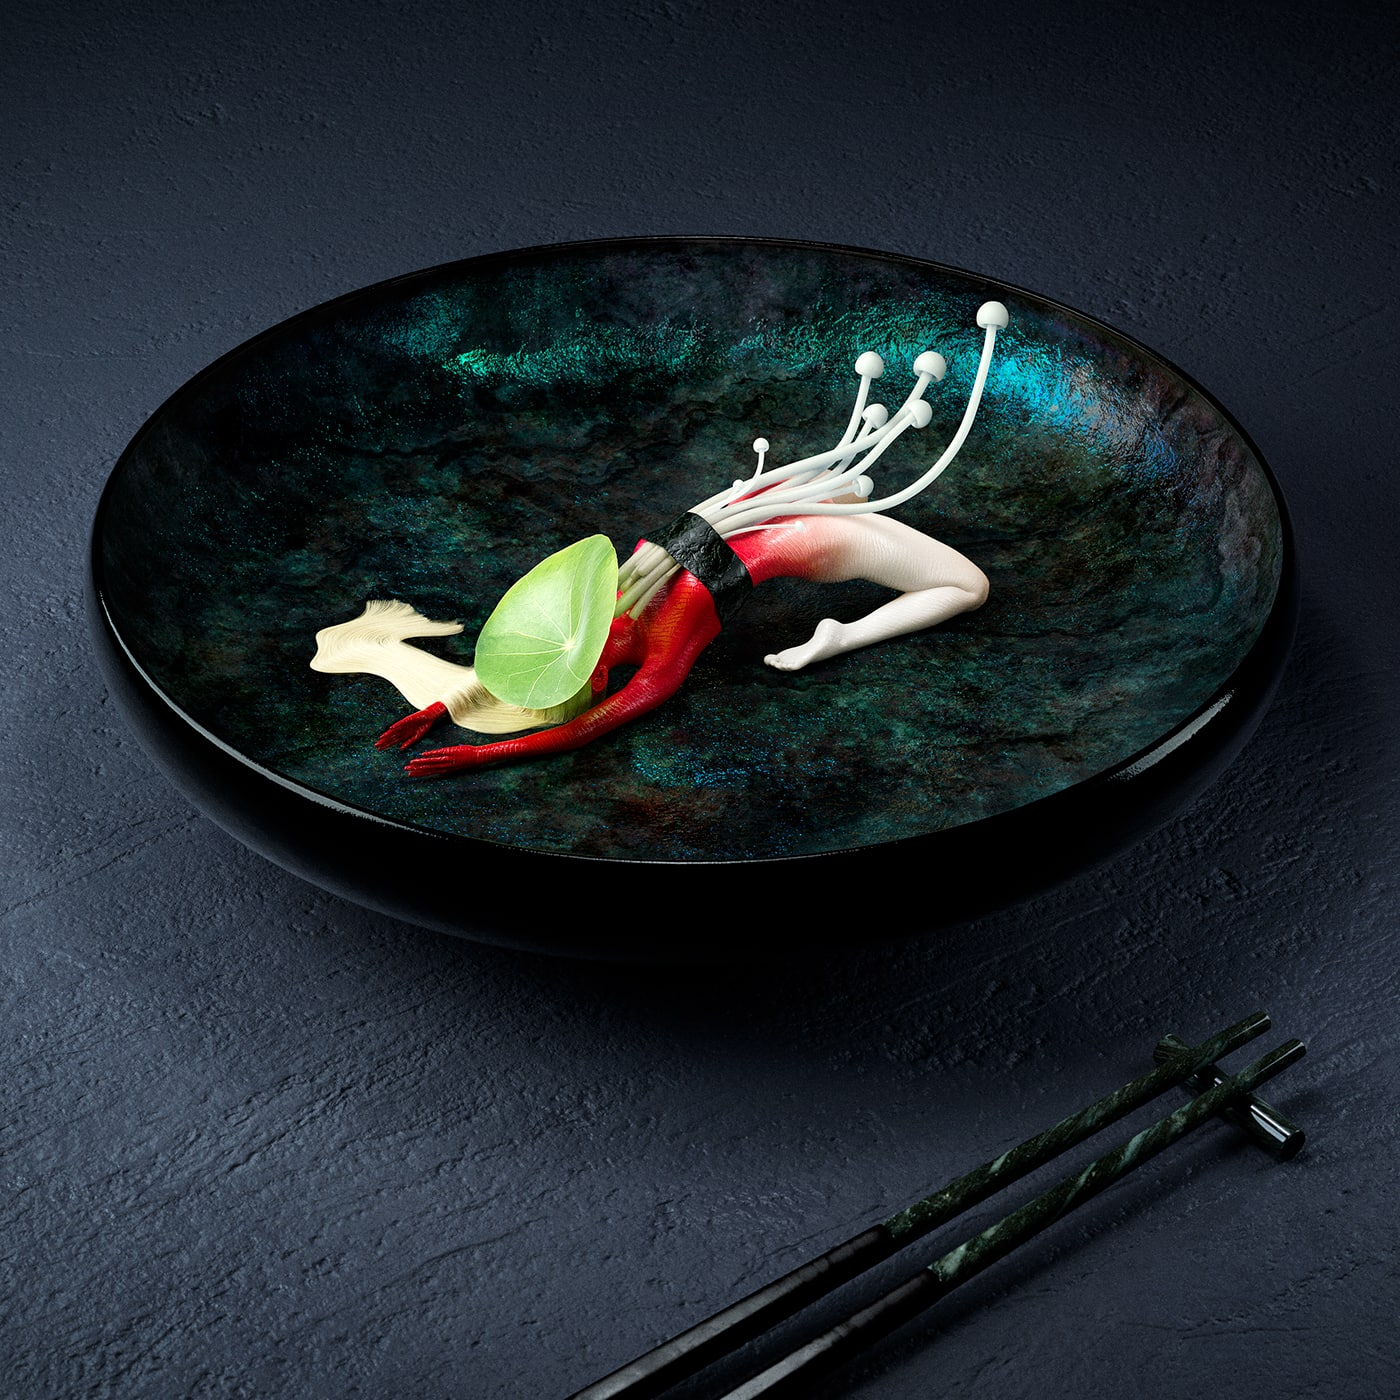 Cristian Girotto Olivier Masson freeyork 3 - French Duo Imagines Human Bodies as Sushi